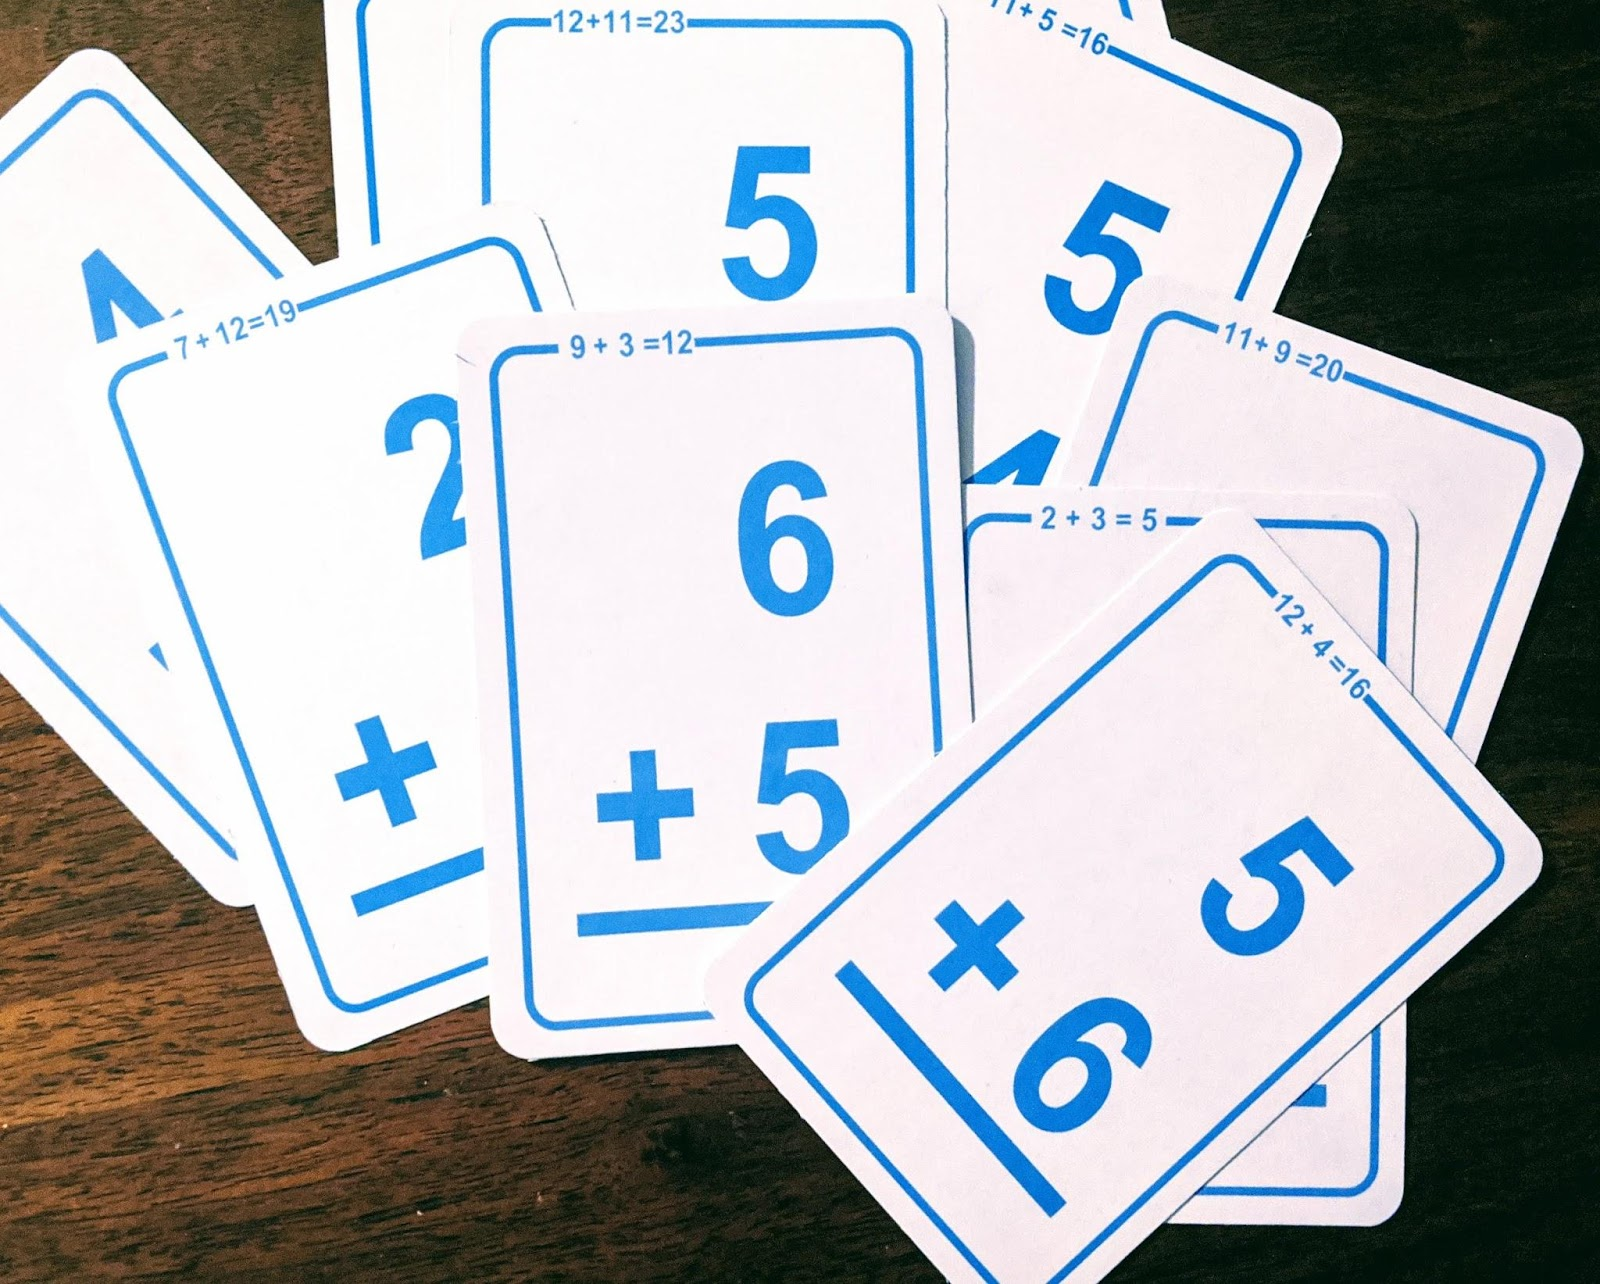 Addition cards spread out